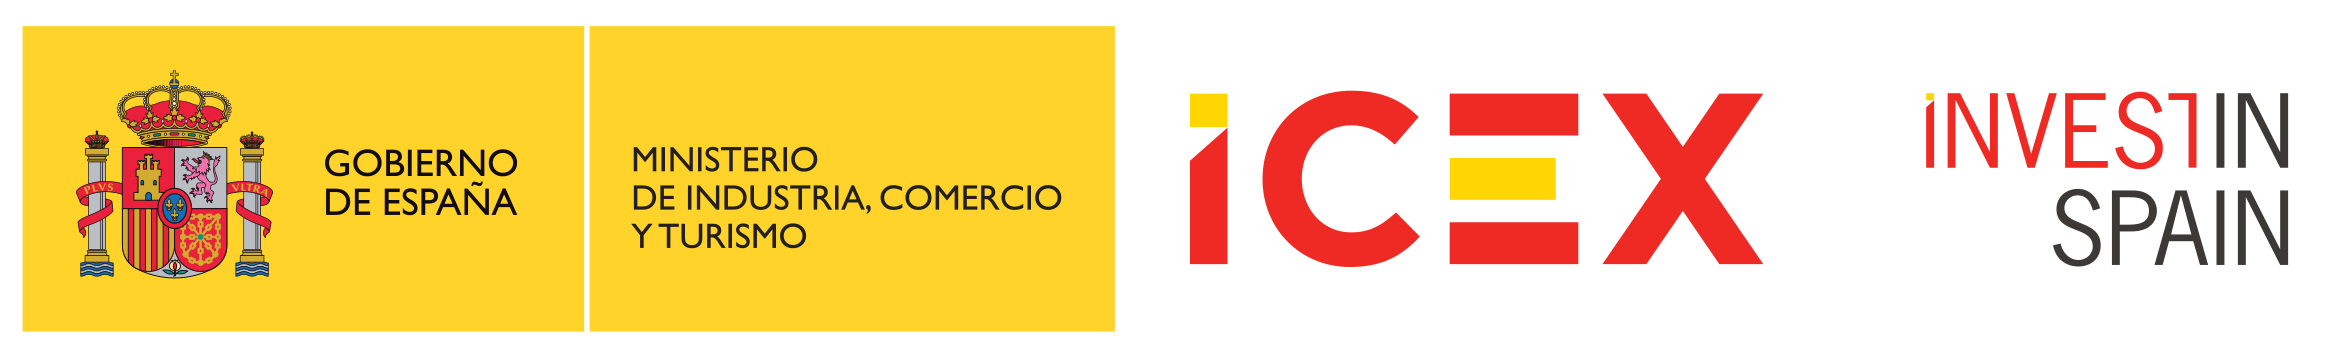 ICEX-INVEST IN SPAIN